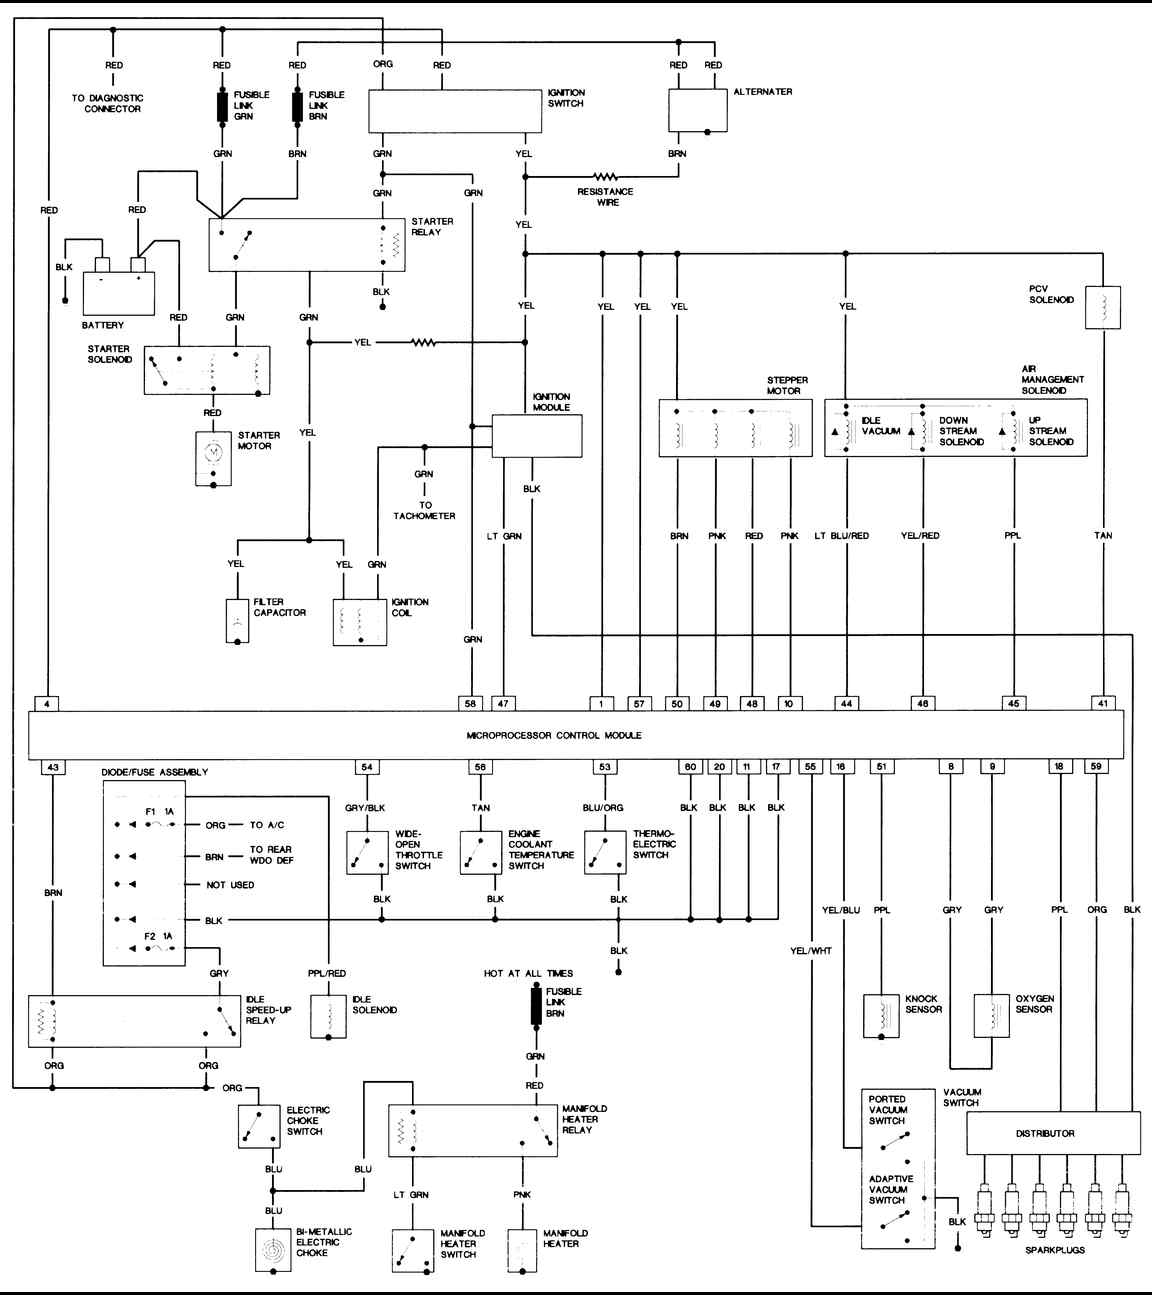 1989 Jeep Yj 4 2 Engine Wiring Diagram - Enthusiast Wiring Diagrams  Jeep Yj Bulkhead Wiring Diagram on 1990 ford taurus wiring diagram, 97 jeep wiring diagram, 1990 jeep yj parts, 1990 mitsubishi montero wiring diagram, jeep wrangler wiring harness diagram, 1990 jeep comanche wiring diagram, 1990 ford bronco wiring diagram, 1990 dodge ram wiring diagram, 1990 dodge dakota wiring diagram, 1990 honda crx wiring diagram, 95 jeep cherokee wiring diagram, 1990 jeep wrangler parts diagram, 1990 dodge ramcharger wiring diagram, 90 jeep wrangler wiring diagram, 1990 jeep yj drive shaft, 1990 dodge spirit wiring diagram, 1990 jeep yj ignition coil, 1990 ford thunderbird wiring diagram, 1990 jeep yj exhaust, jeep wrangler ac wiring diagram,